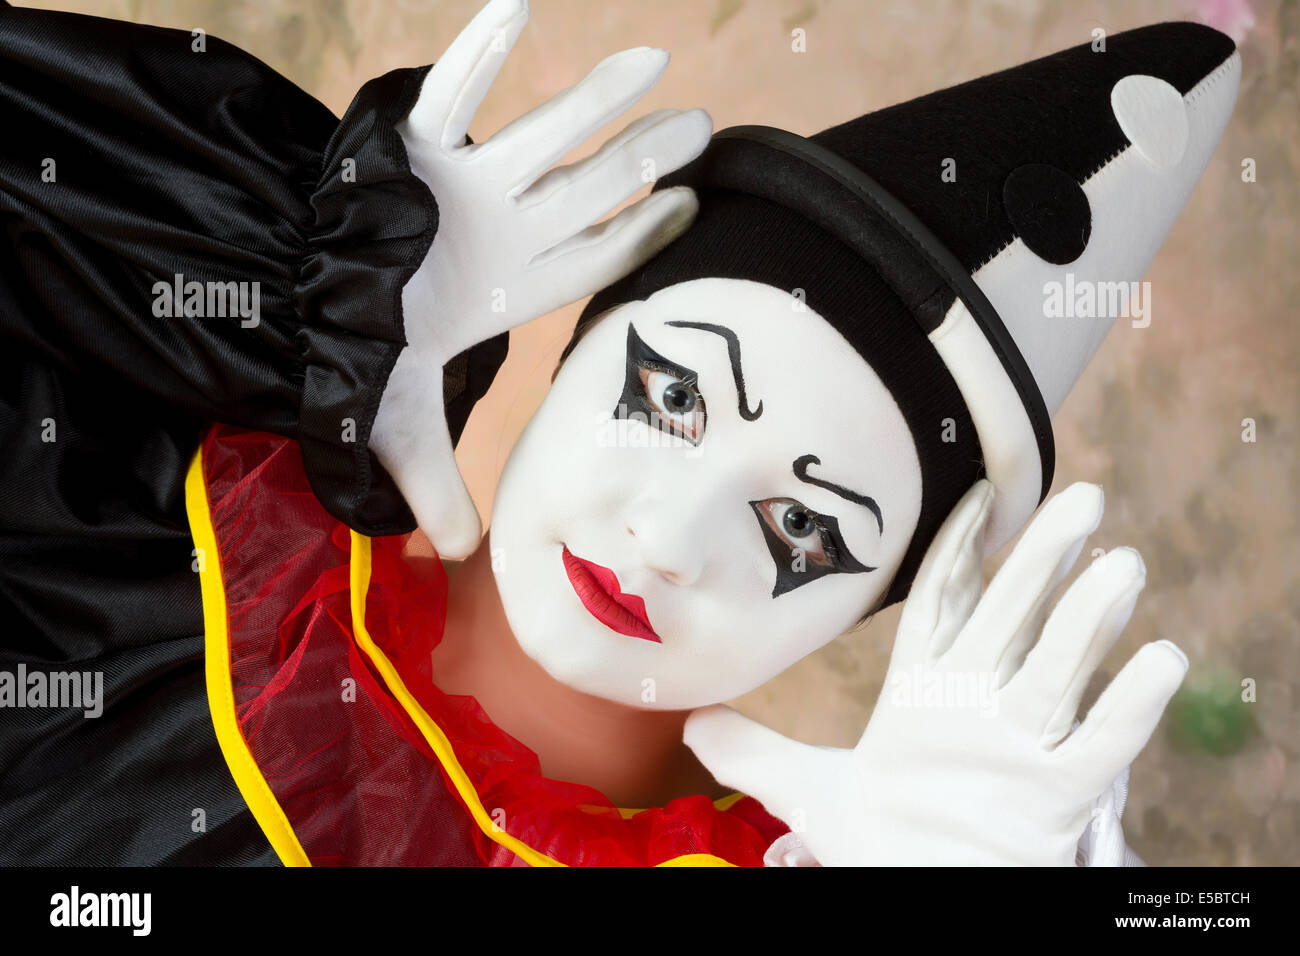 Female mime artist in pierrot clown disguise - Stock Image